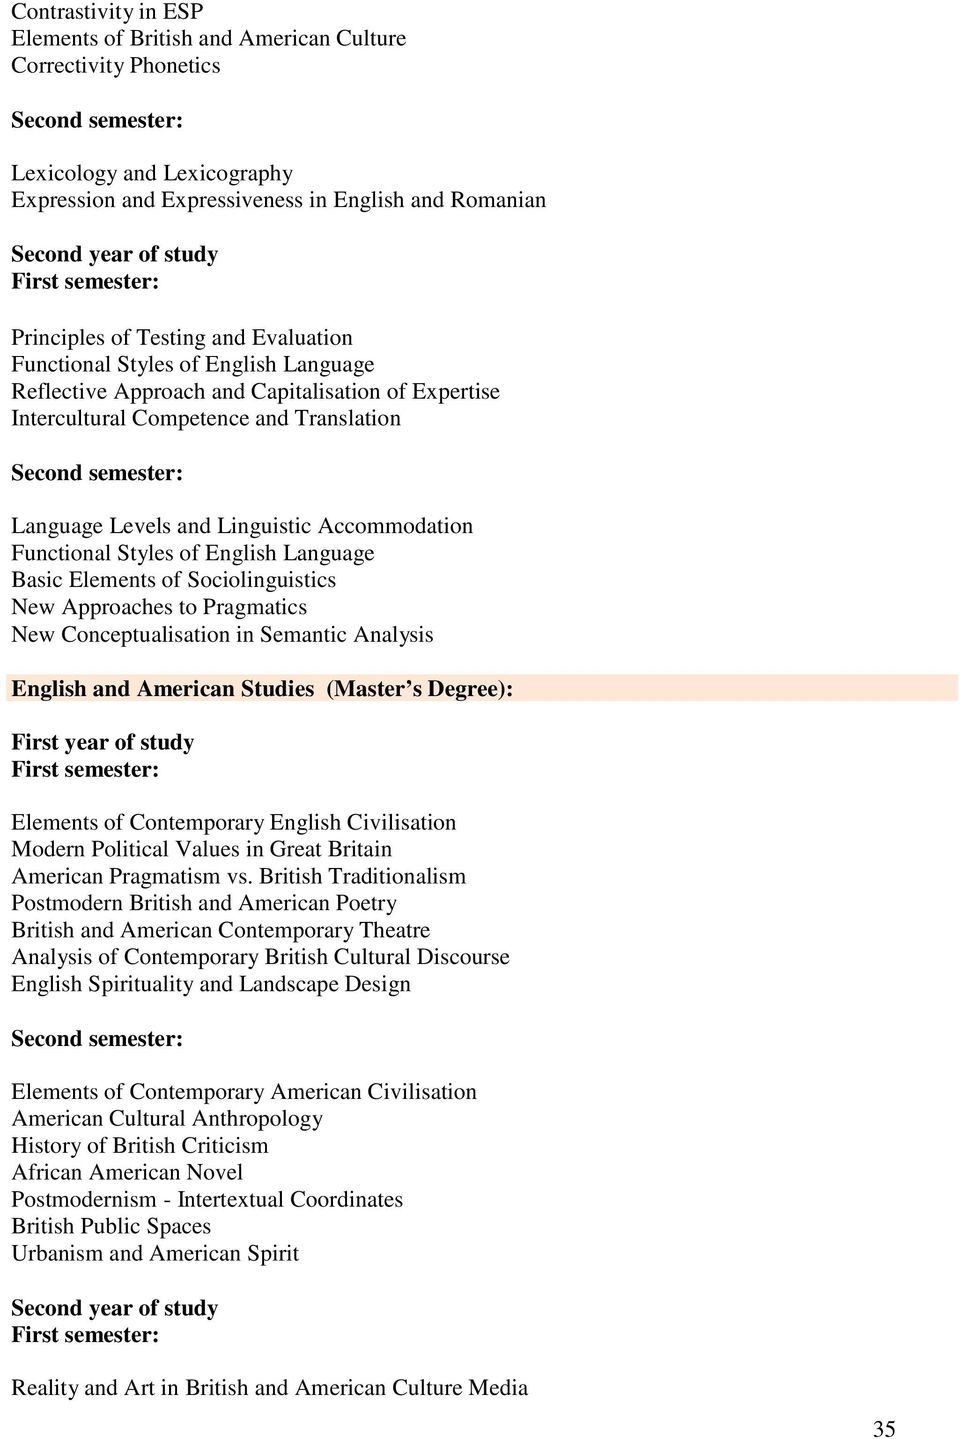 Styles of English Language Basic Elements of Sociolinguistics New Approaches to Pragmatics New Conceptualisation in Semantic Analysis English and American Studies (Master s Degree): Elements of